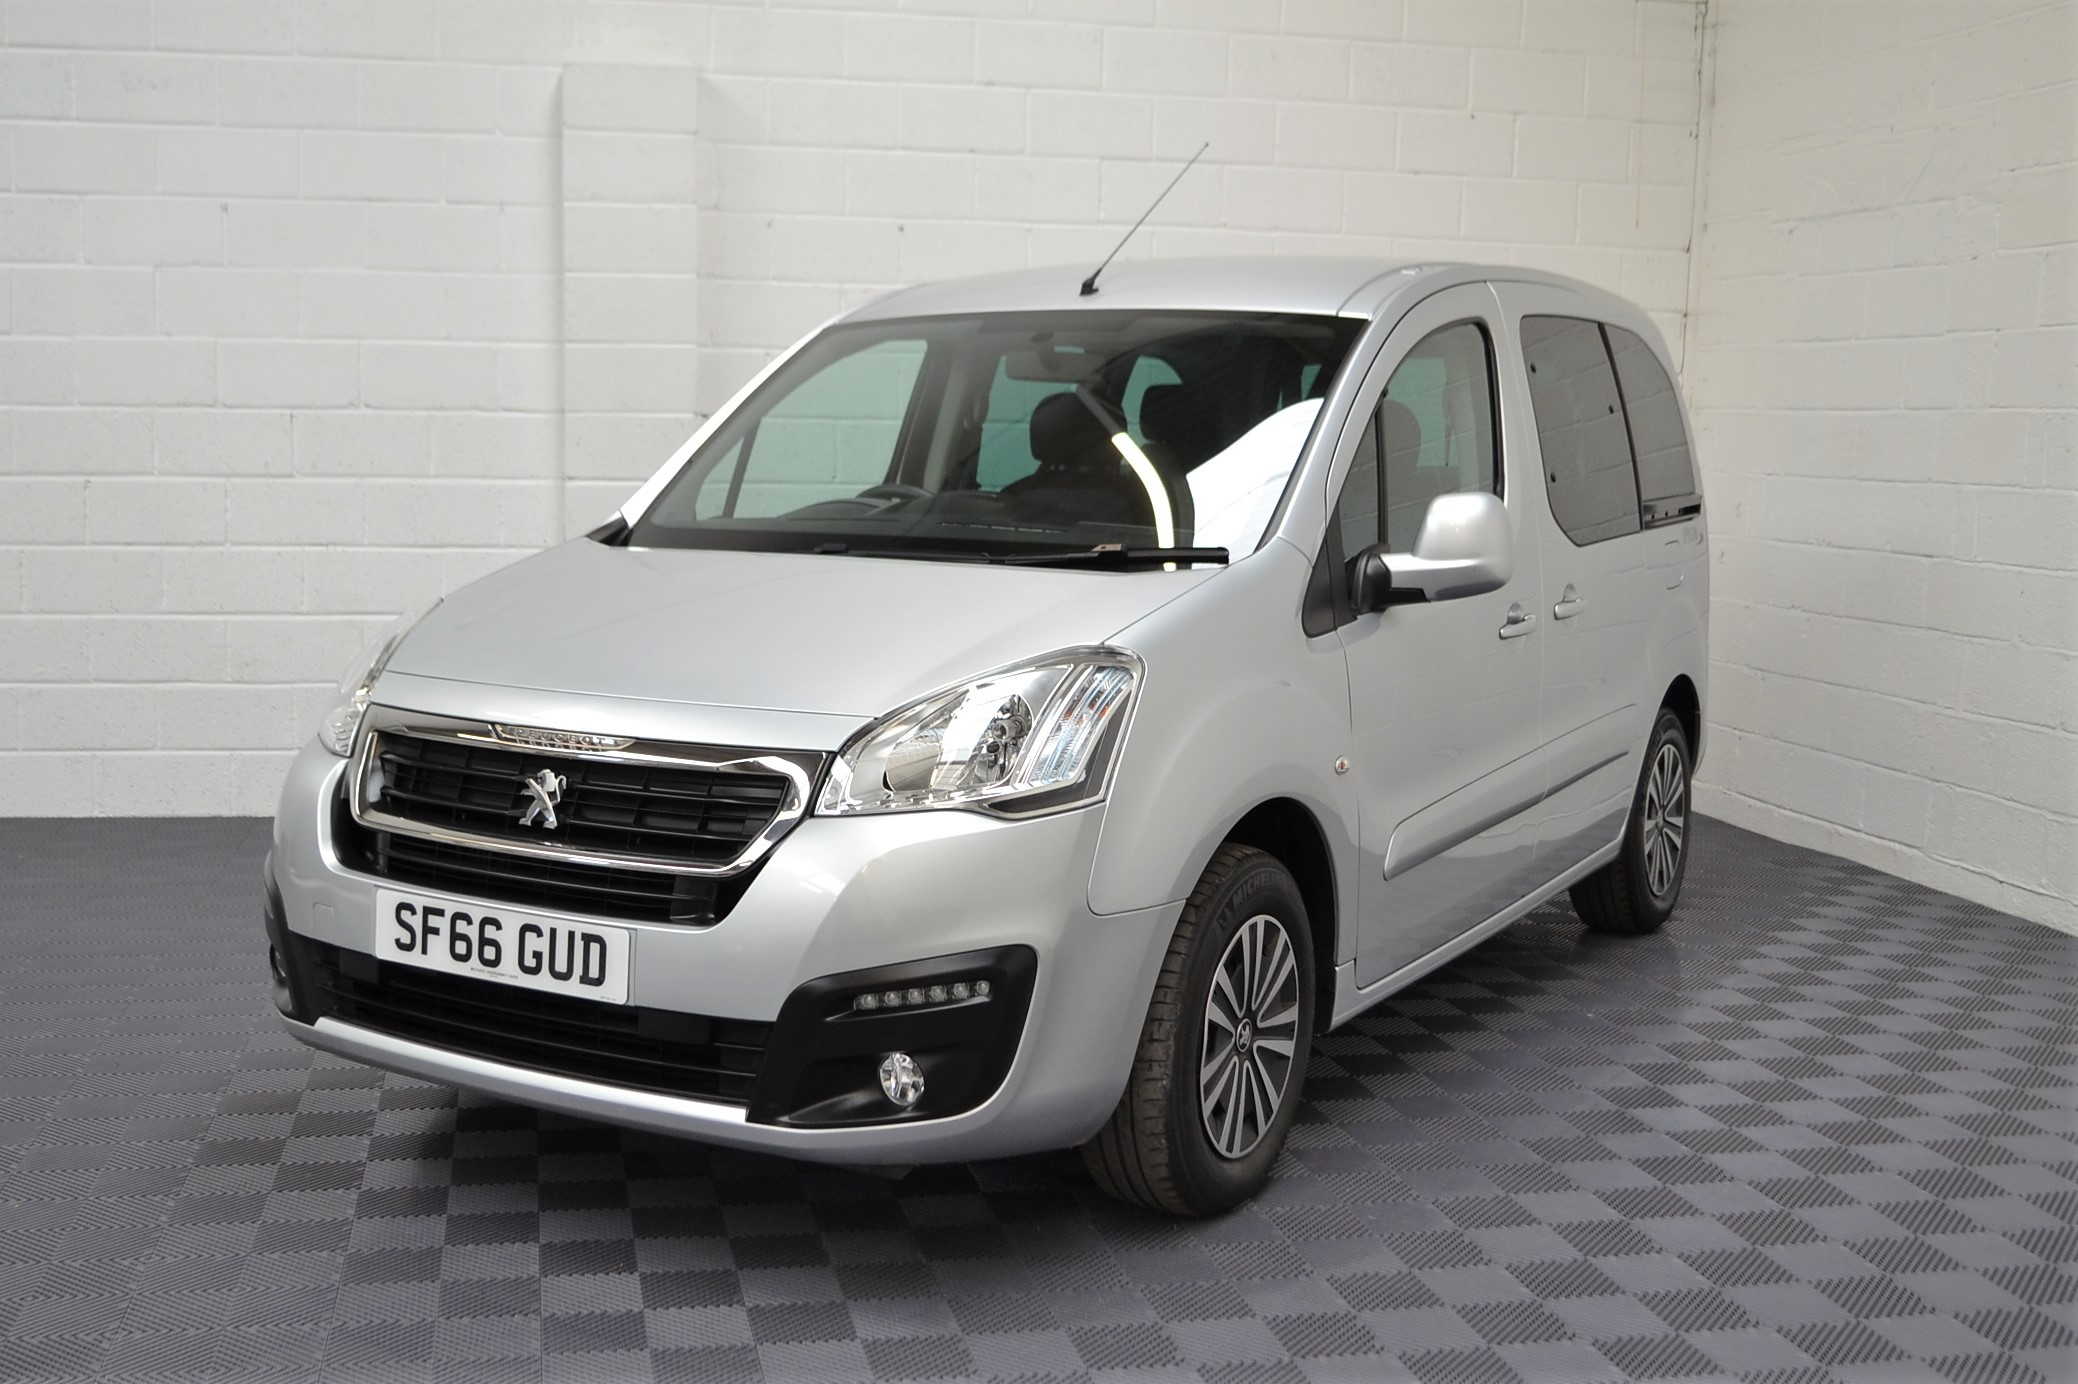 WAV Cars For Sale Bristol Wheelchair Accessible Vehicles Used For Sale Somerset Devon Dorset Bath Peugeot Partner Automatic 5